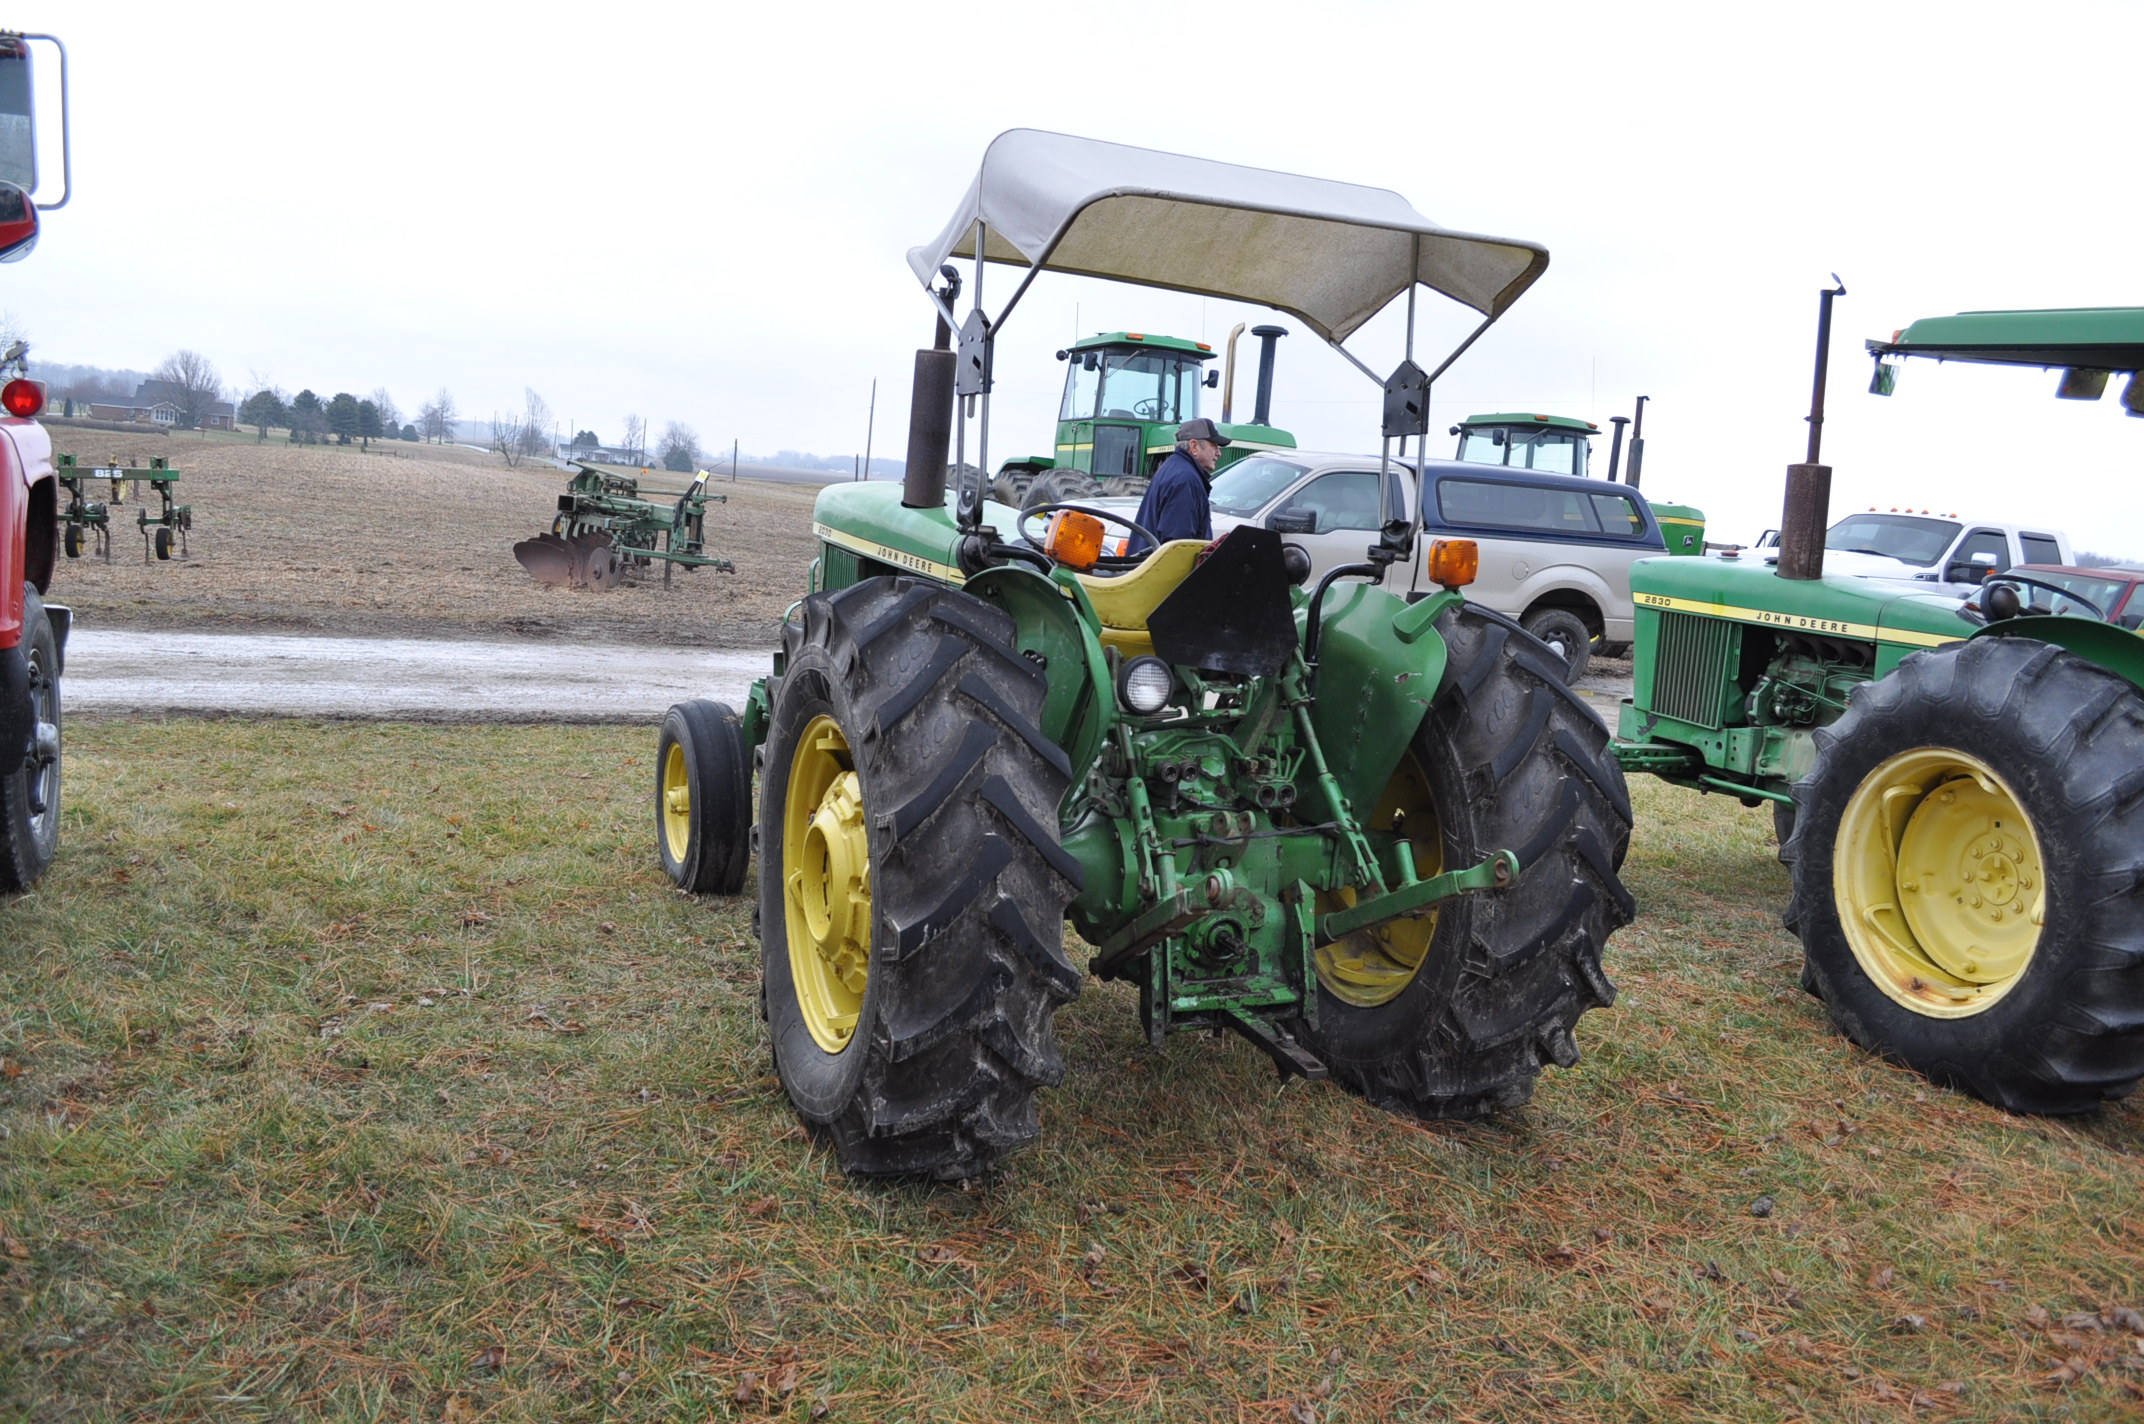 John Deere 2030 tractor, diesel, 16.9-28 rear, 7.5-15 front, canopy, power shuttle, 2 hyd remotes, - Image 2 of 20